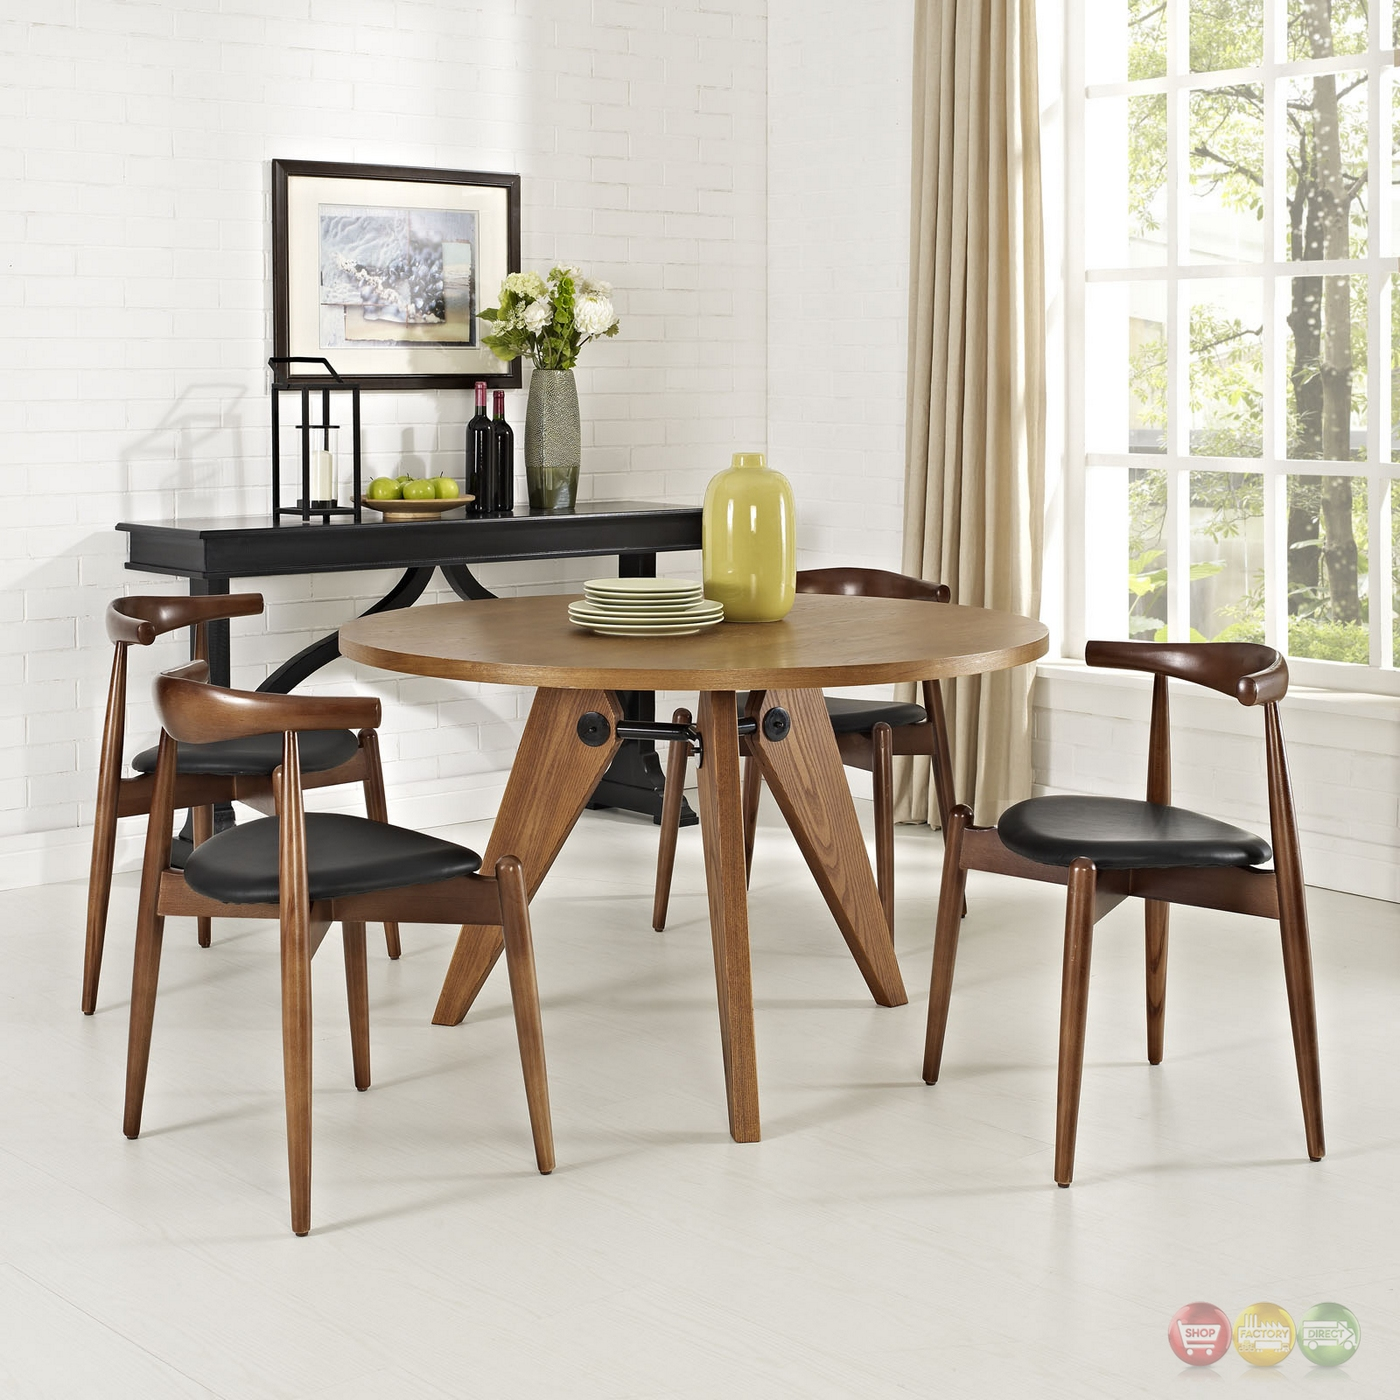 Stalwart Contemporary Wood Dining Table Set W Upholstered Seats Dark Walnut